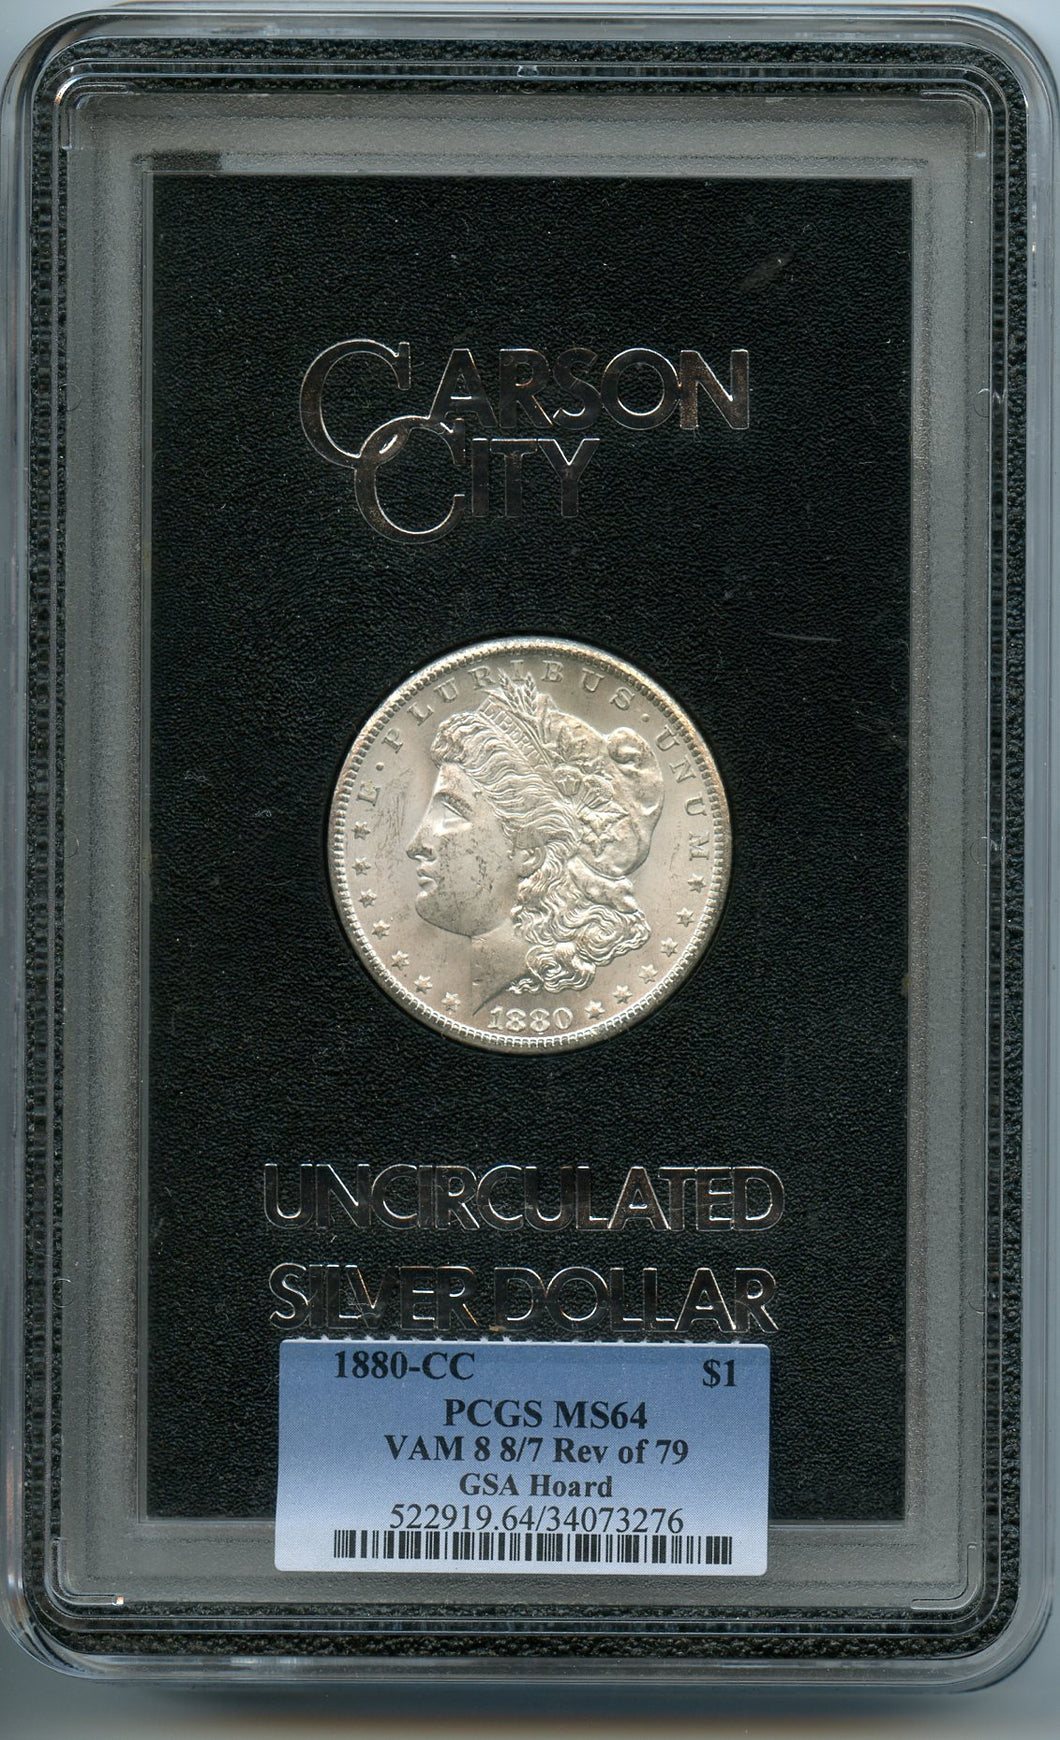 1880-CC $1, PCGS MS64, VAM 8, 8/7 Rev of 79